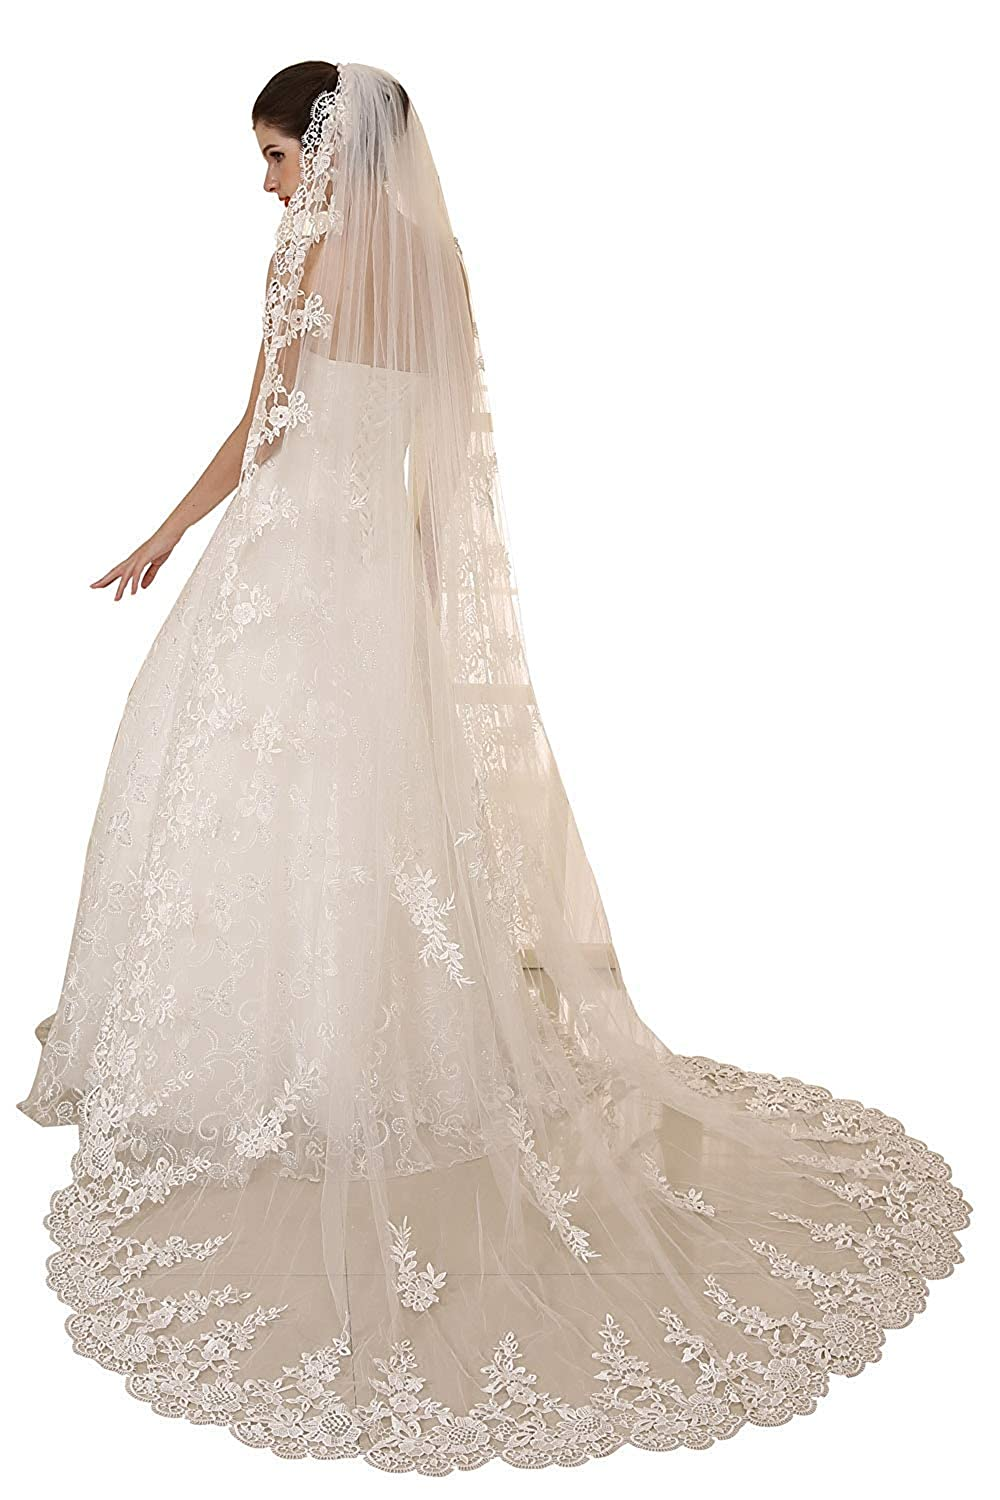 EllieHouse Womens Wedding Veils 1 Tier White Ivory 3M//4M//5M Lace Long Train Bridal Veil With Comb S114